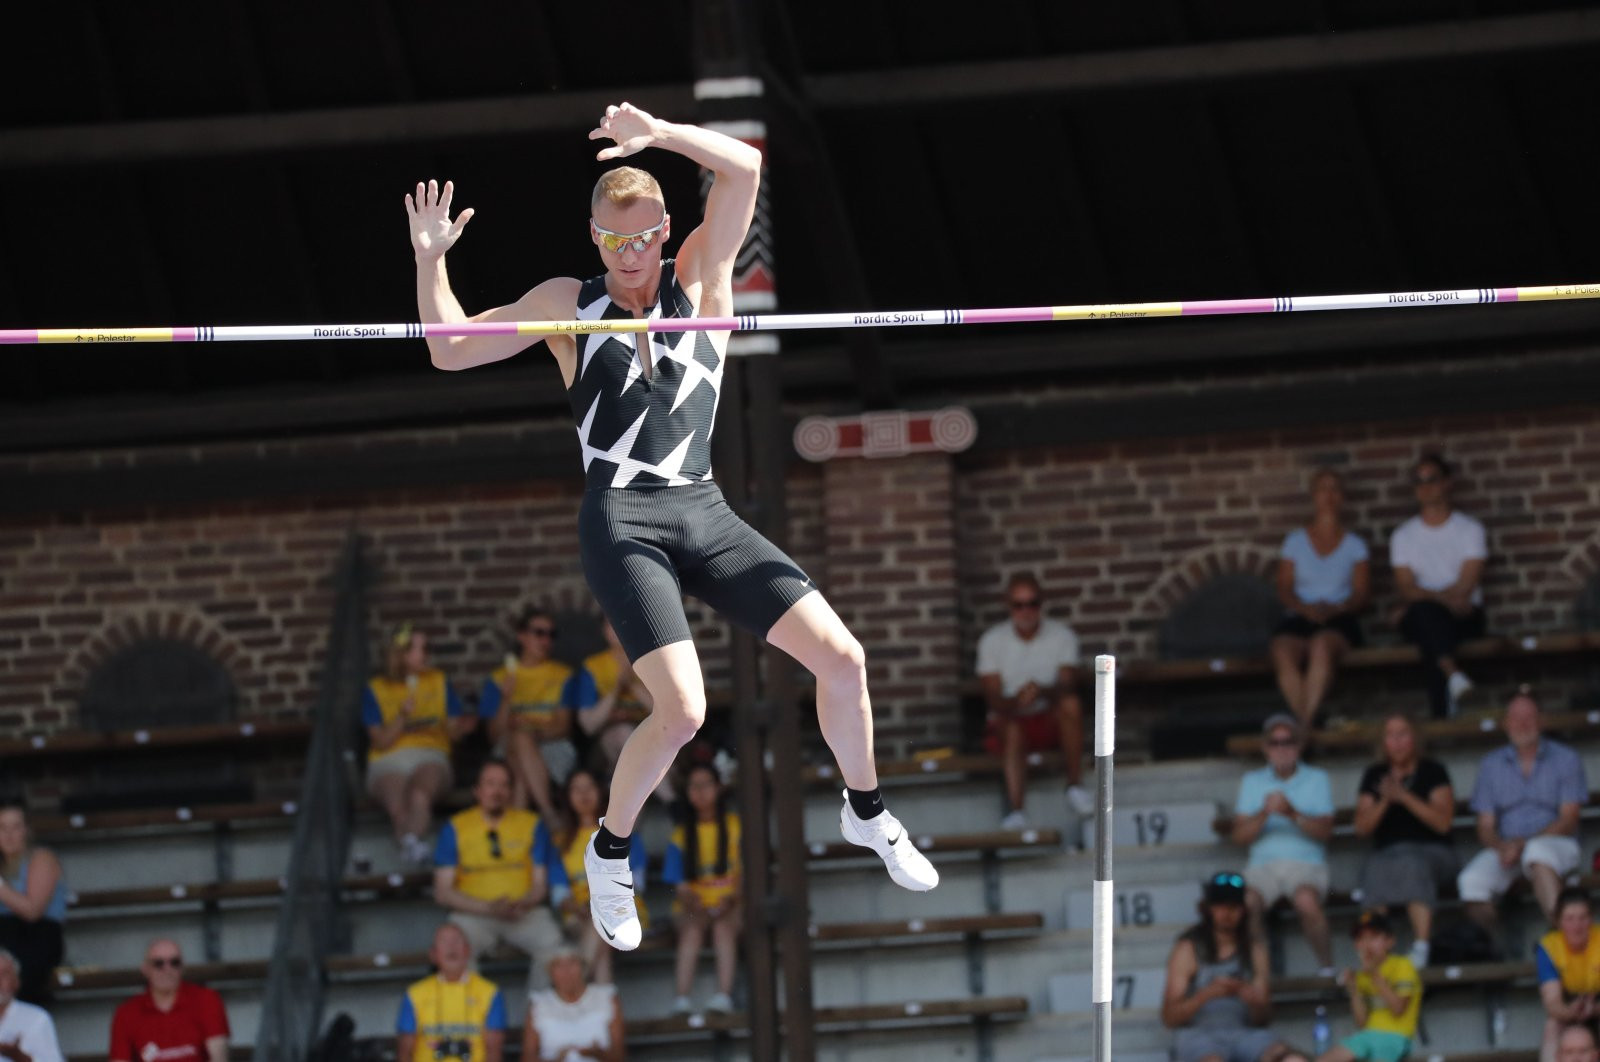 U.S. athlete Sam Kendricks in action at the Diamond League athletics meet in Stockholm, Sweden, July 4, 2021. (Reuters Photo)